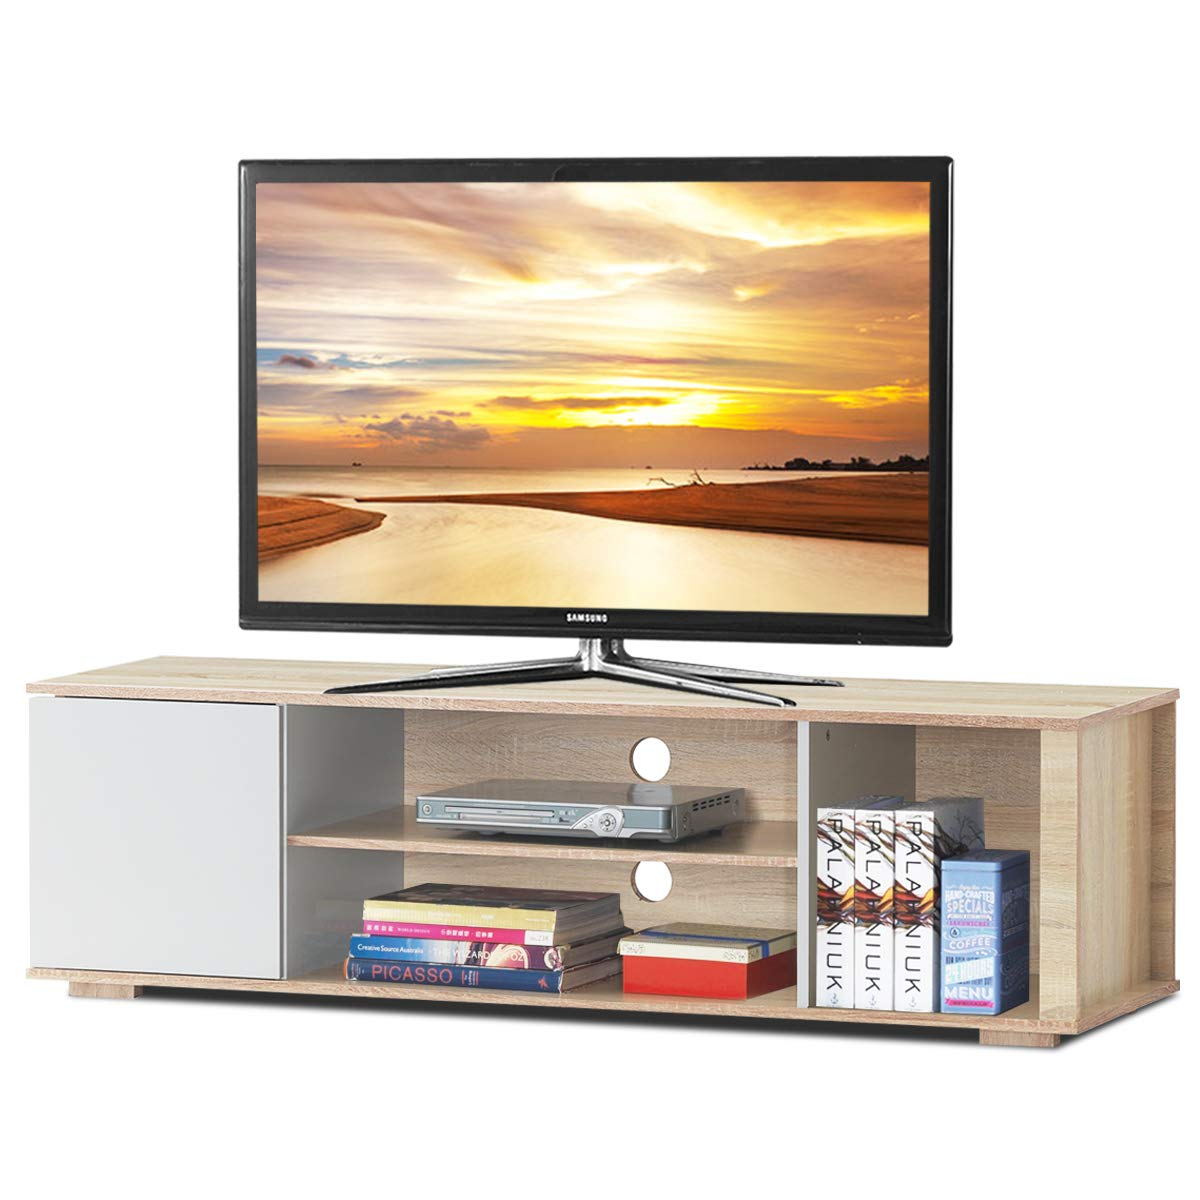 Tangkula TV Stand, Media Unit Storage Media Console Cabinet Home Furniture TV Stand, Open Compartment and Display Shelves for Spacious Storage Space (Natural) by Tangkula